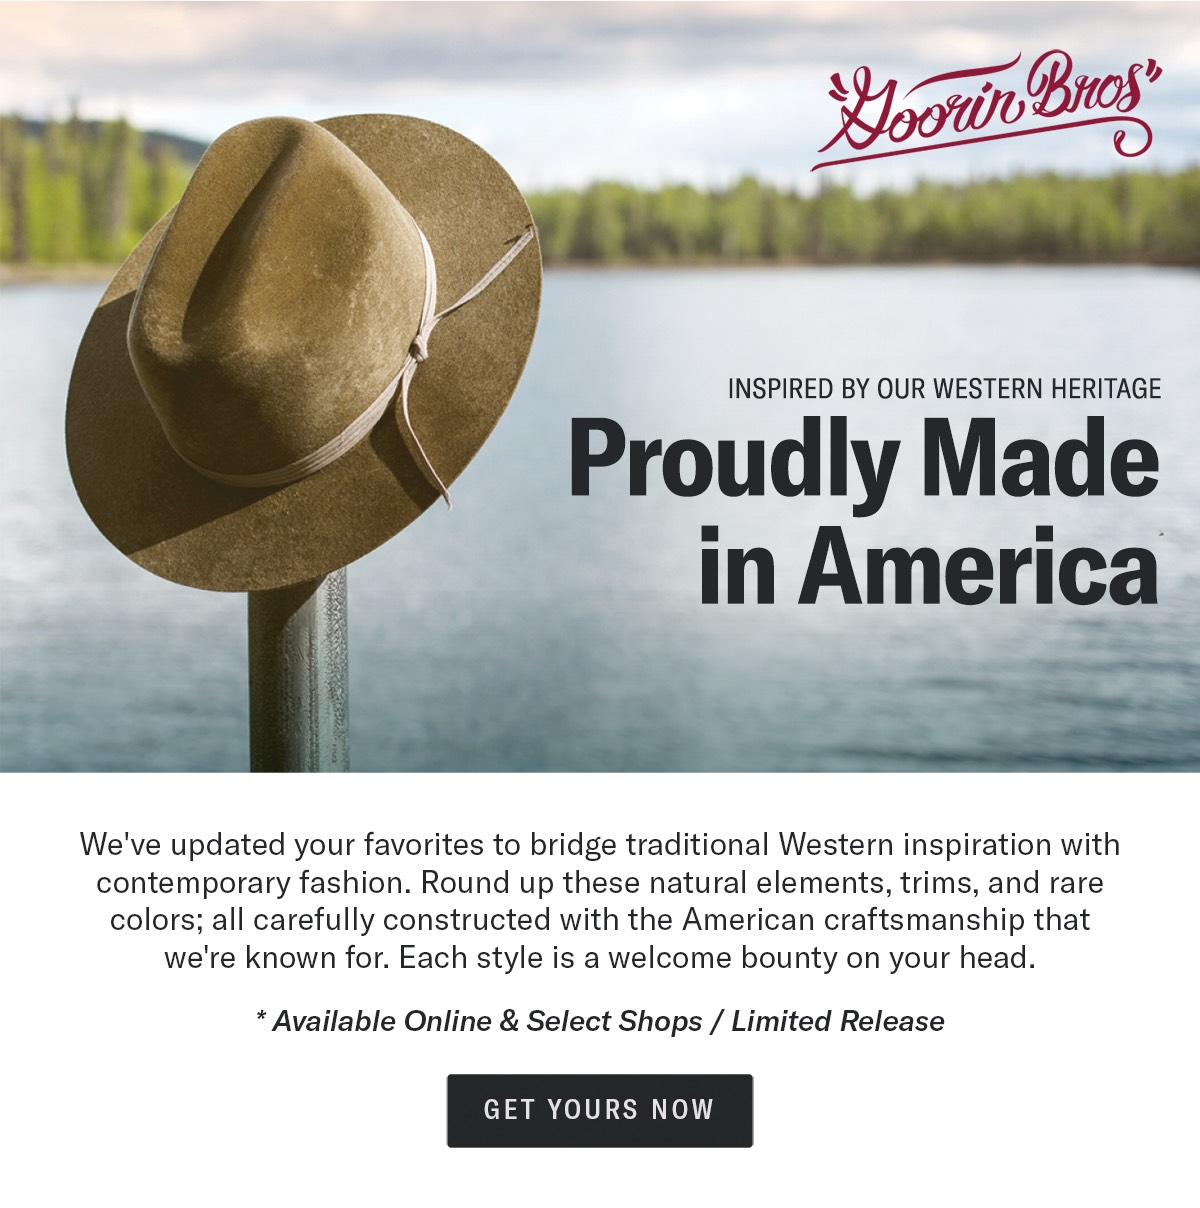 Inspired by our western heritage | PROUDLY MADE IN AMERICA | We've updated your favorites to bridge traditional Western inspiration with contemporary fashion. Round up these natural elements, trims, and rare colors; all carefully constructed with American craftsmanship that we're known for. Each style is a welcome bounty on your head. | *Available Online & Select Shops / Limited Release | GET YOURS NOW